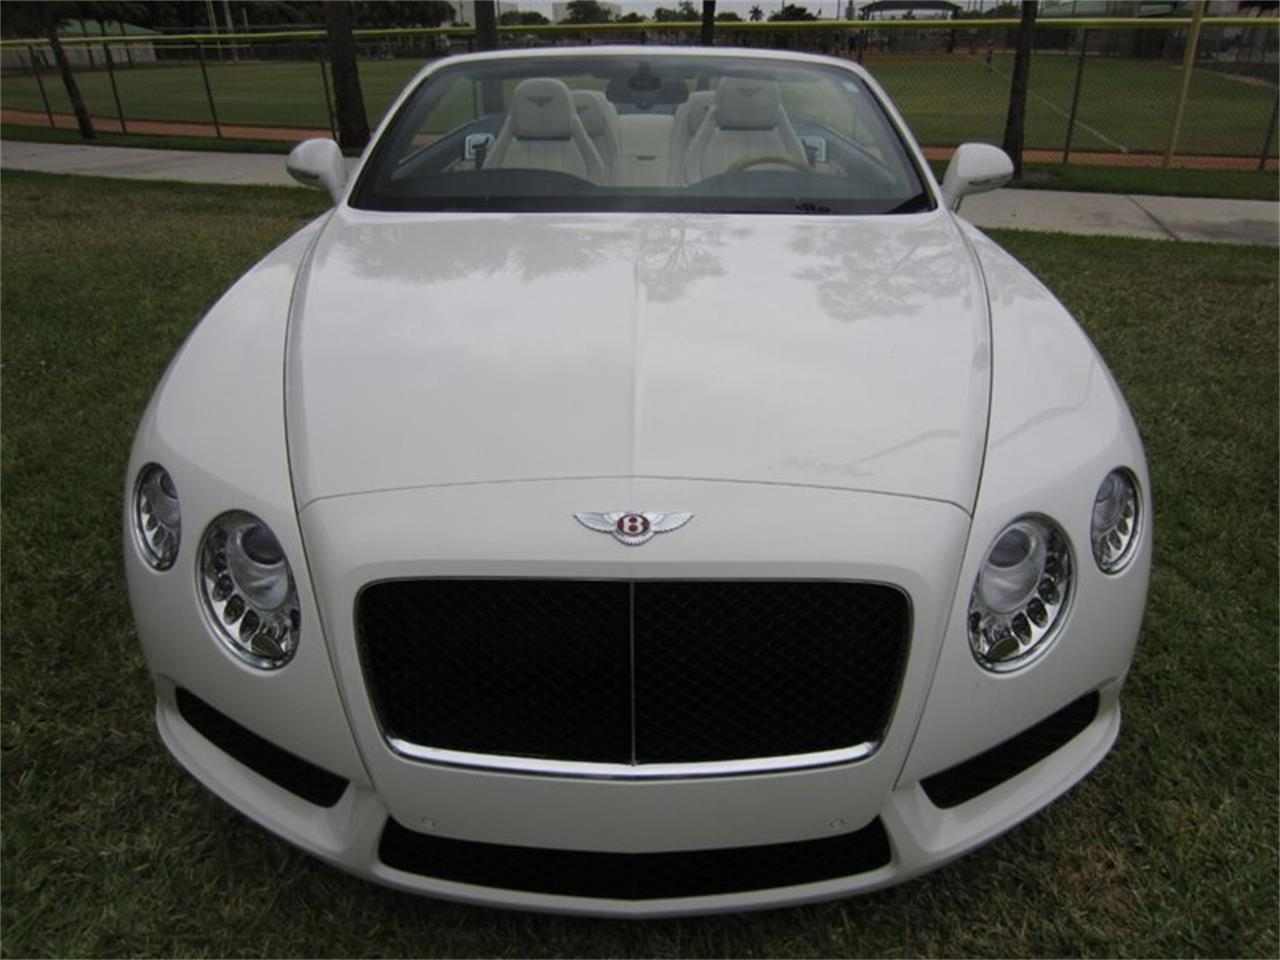 Large Picture of '13 Bentley Continental GTC V8 located in Florida - $102,400.00 Offered by Autosport Group - Q2NI